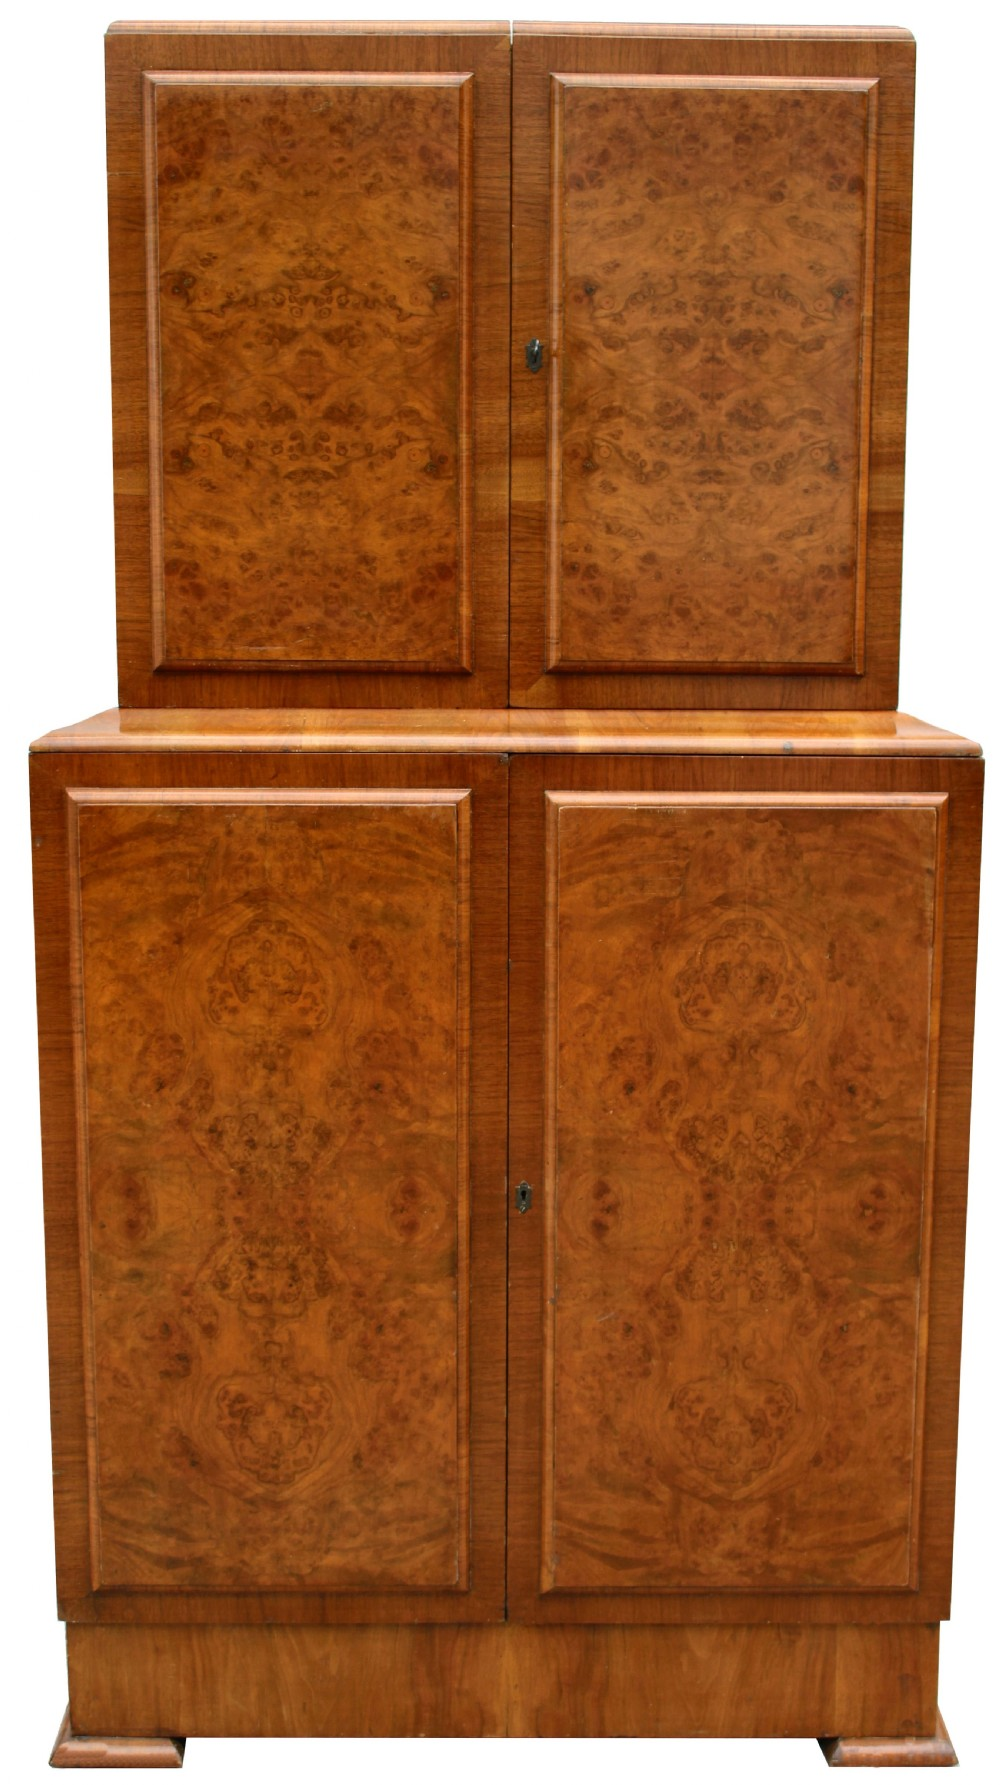 art deco 1930's walnut fronted cocktail drinks cabinet